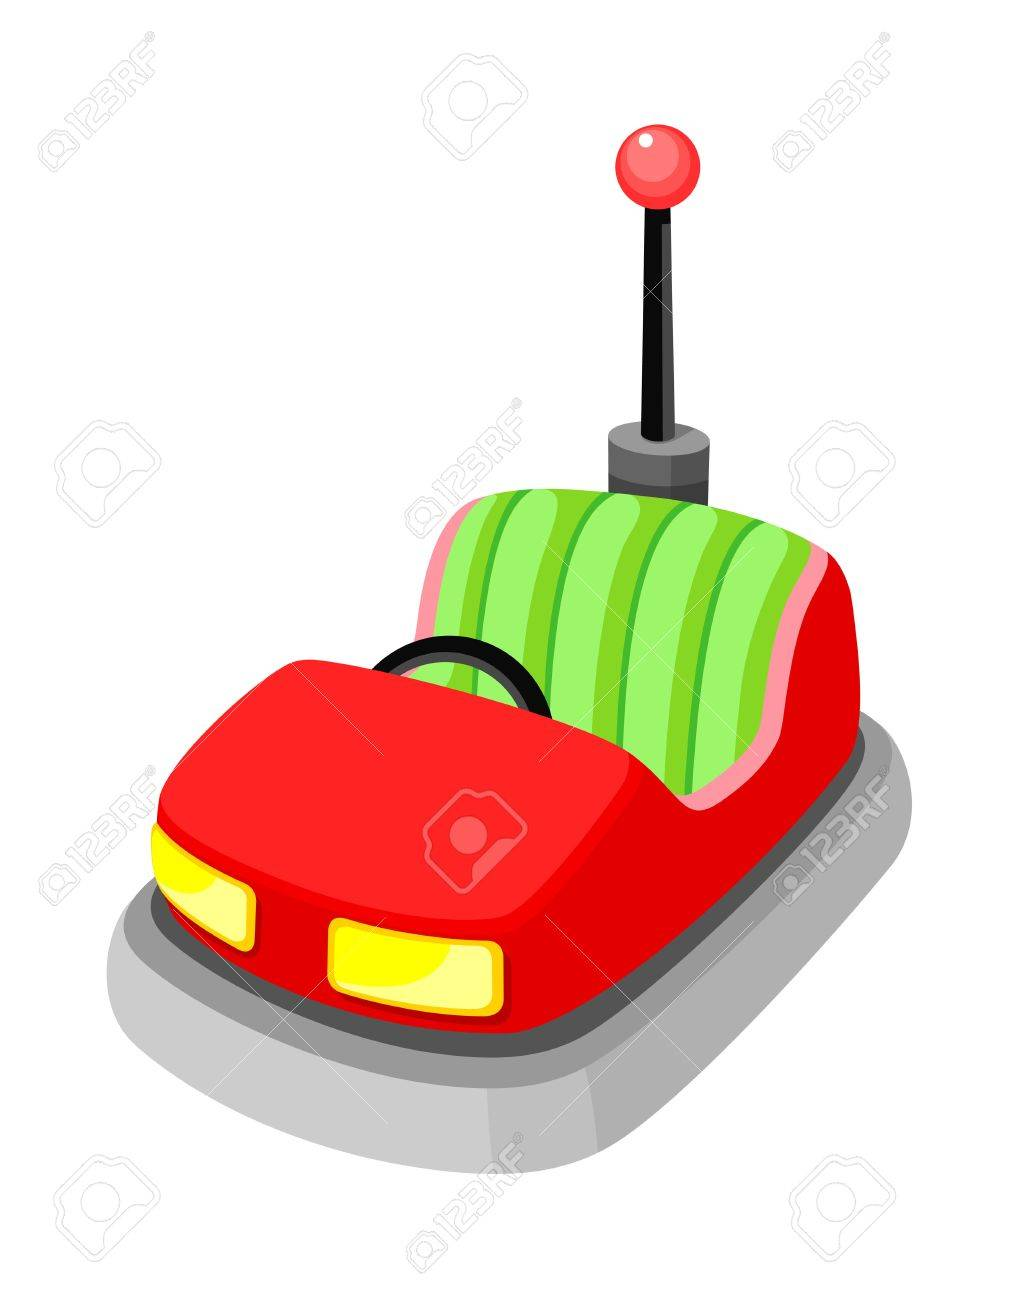 Icon Amusement Park Ride Royalty Free Cliparts, Vectors, And Stock ...